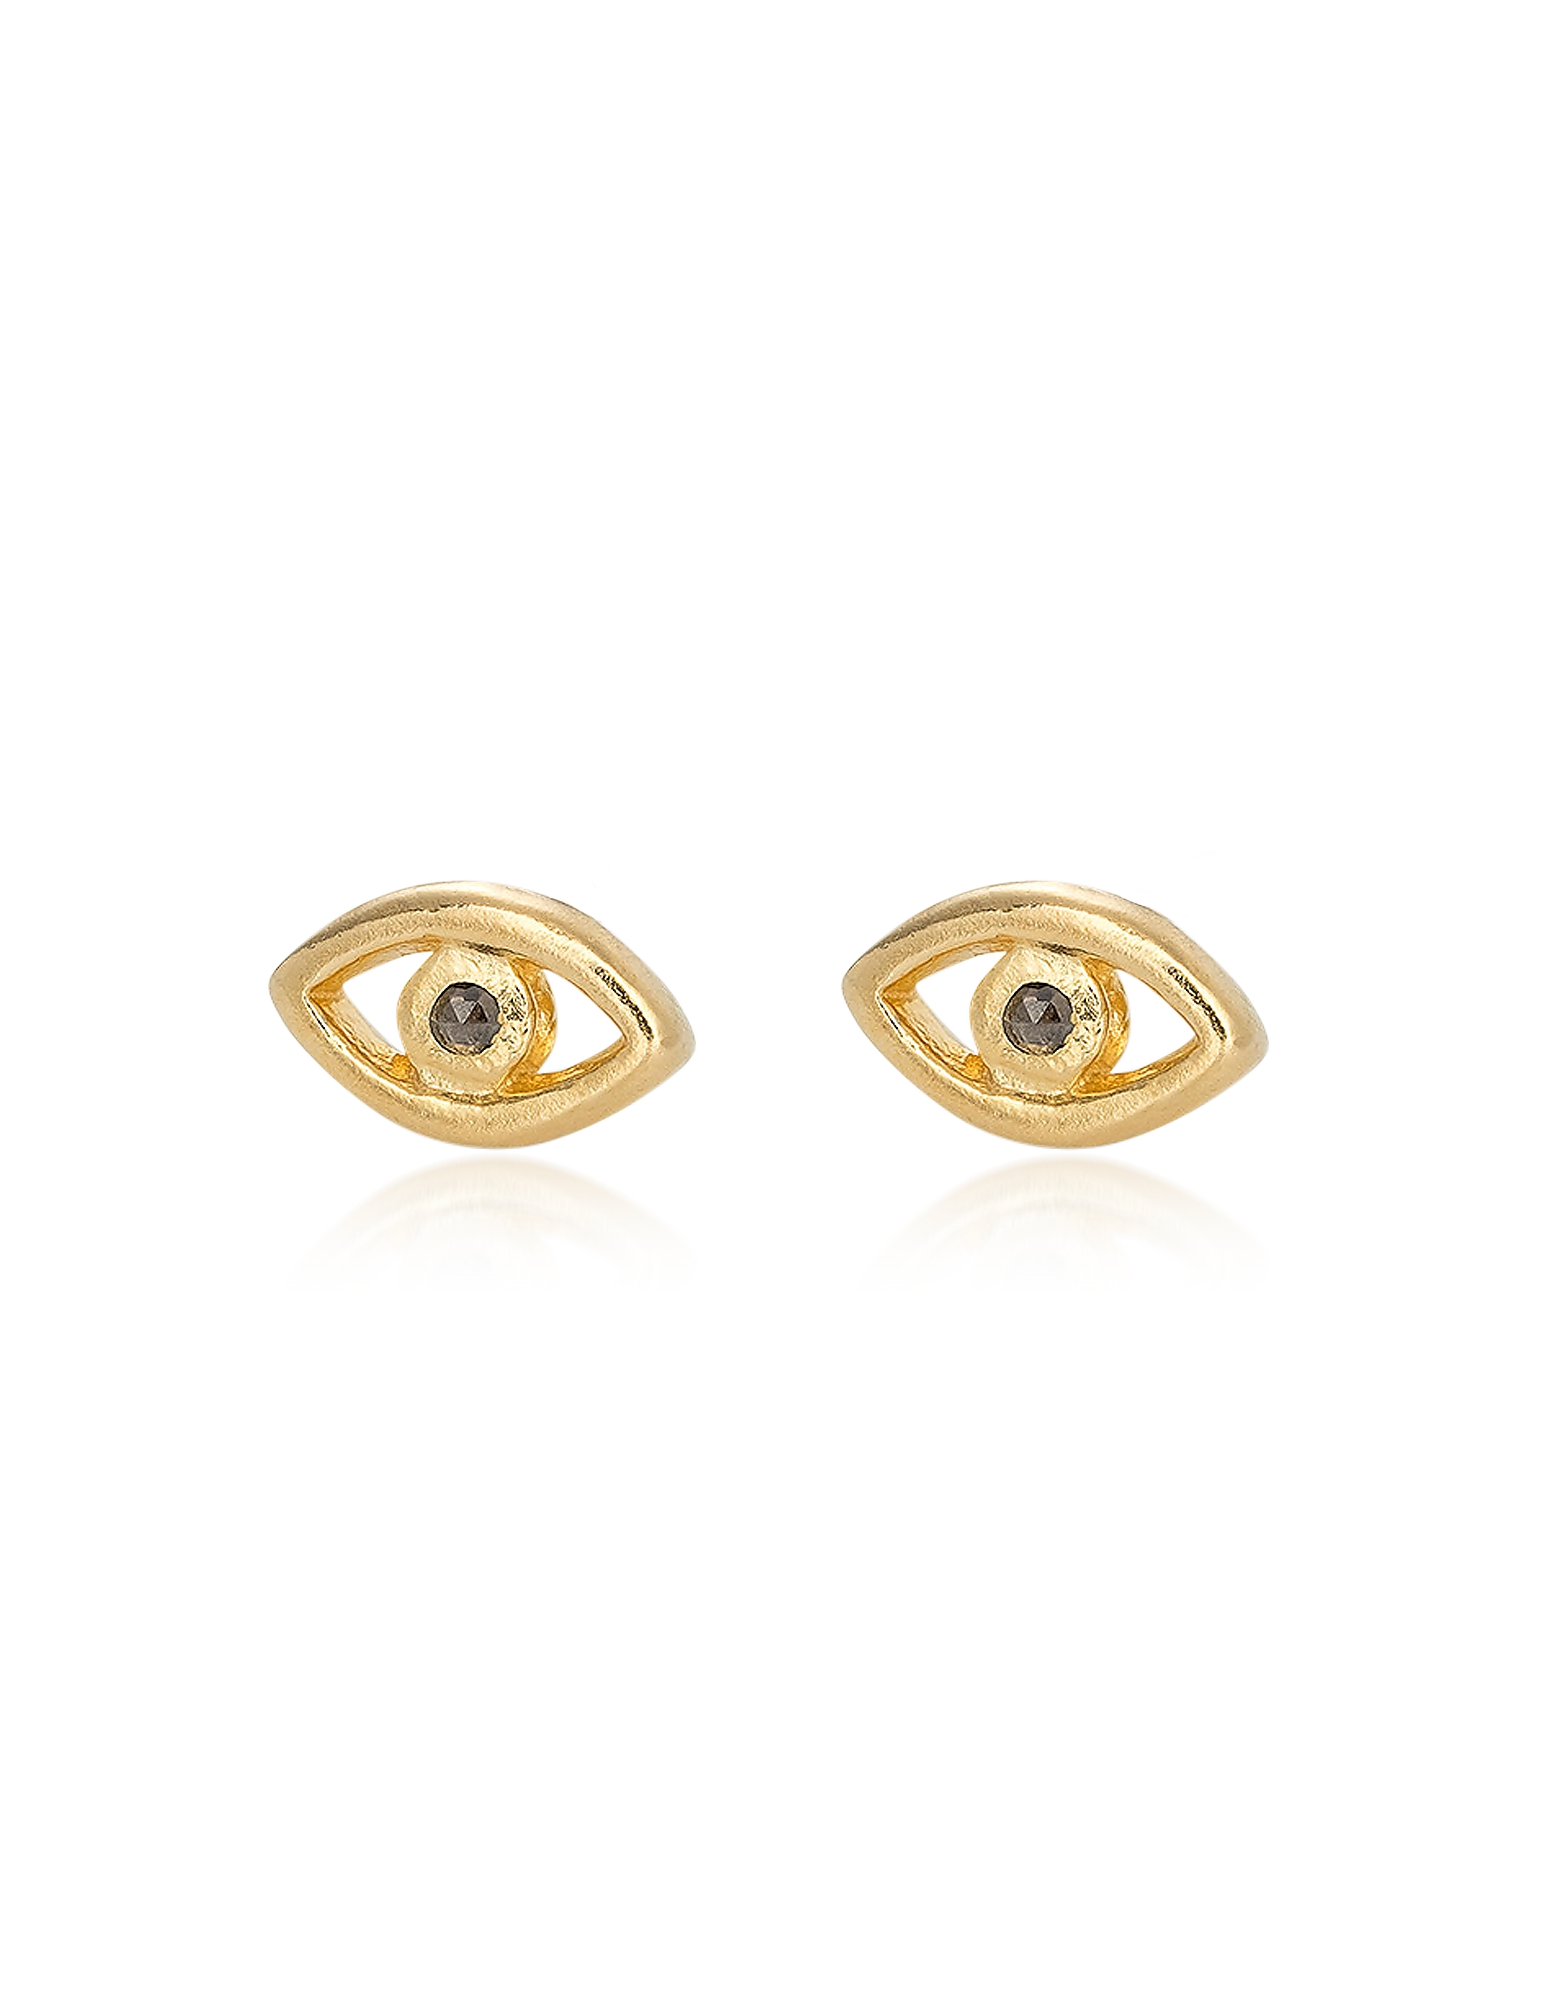 The Third Eye Earstuds